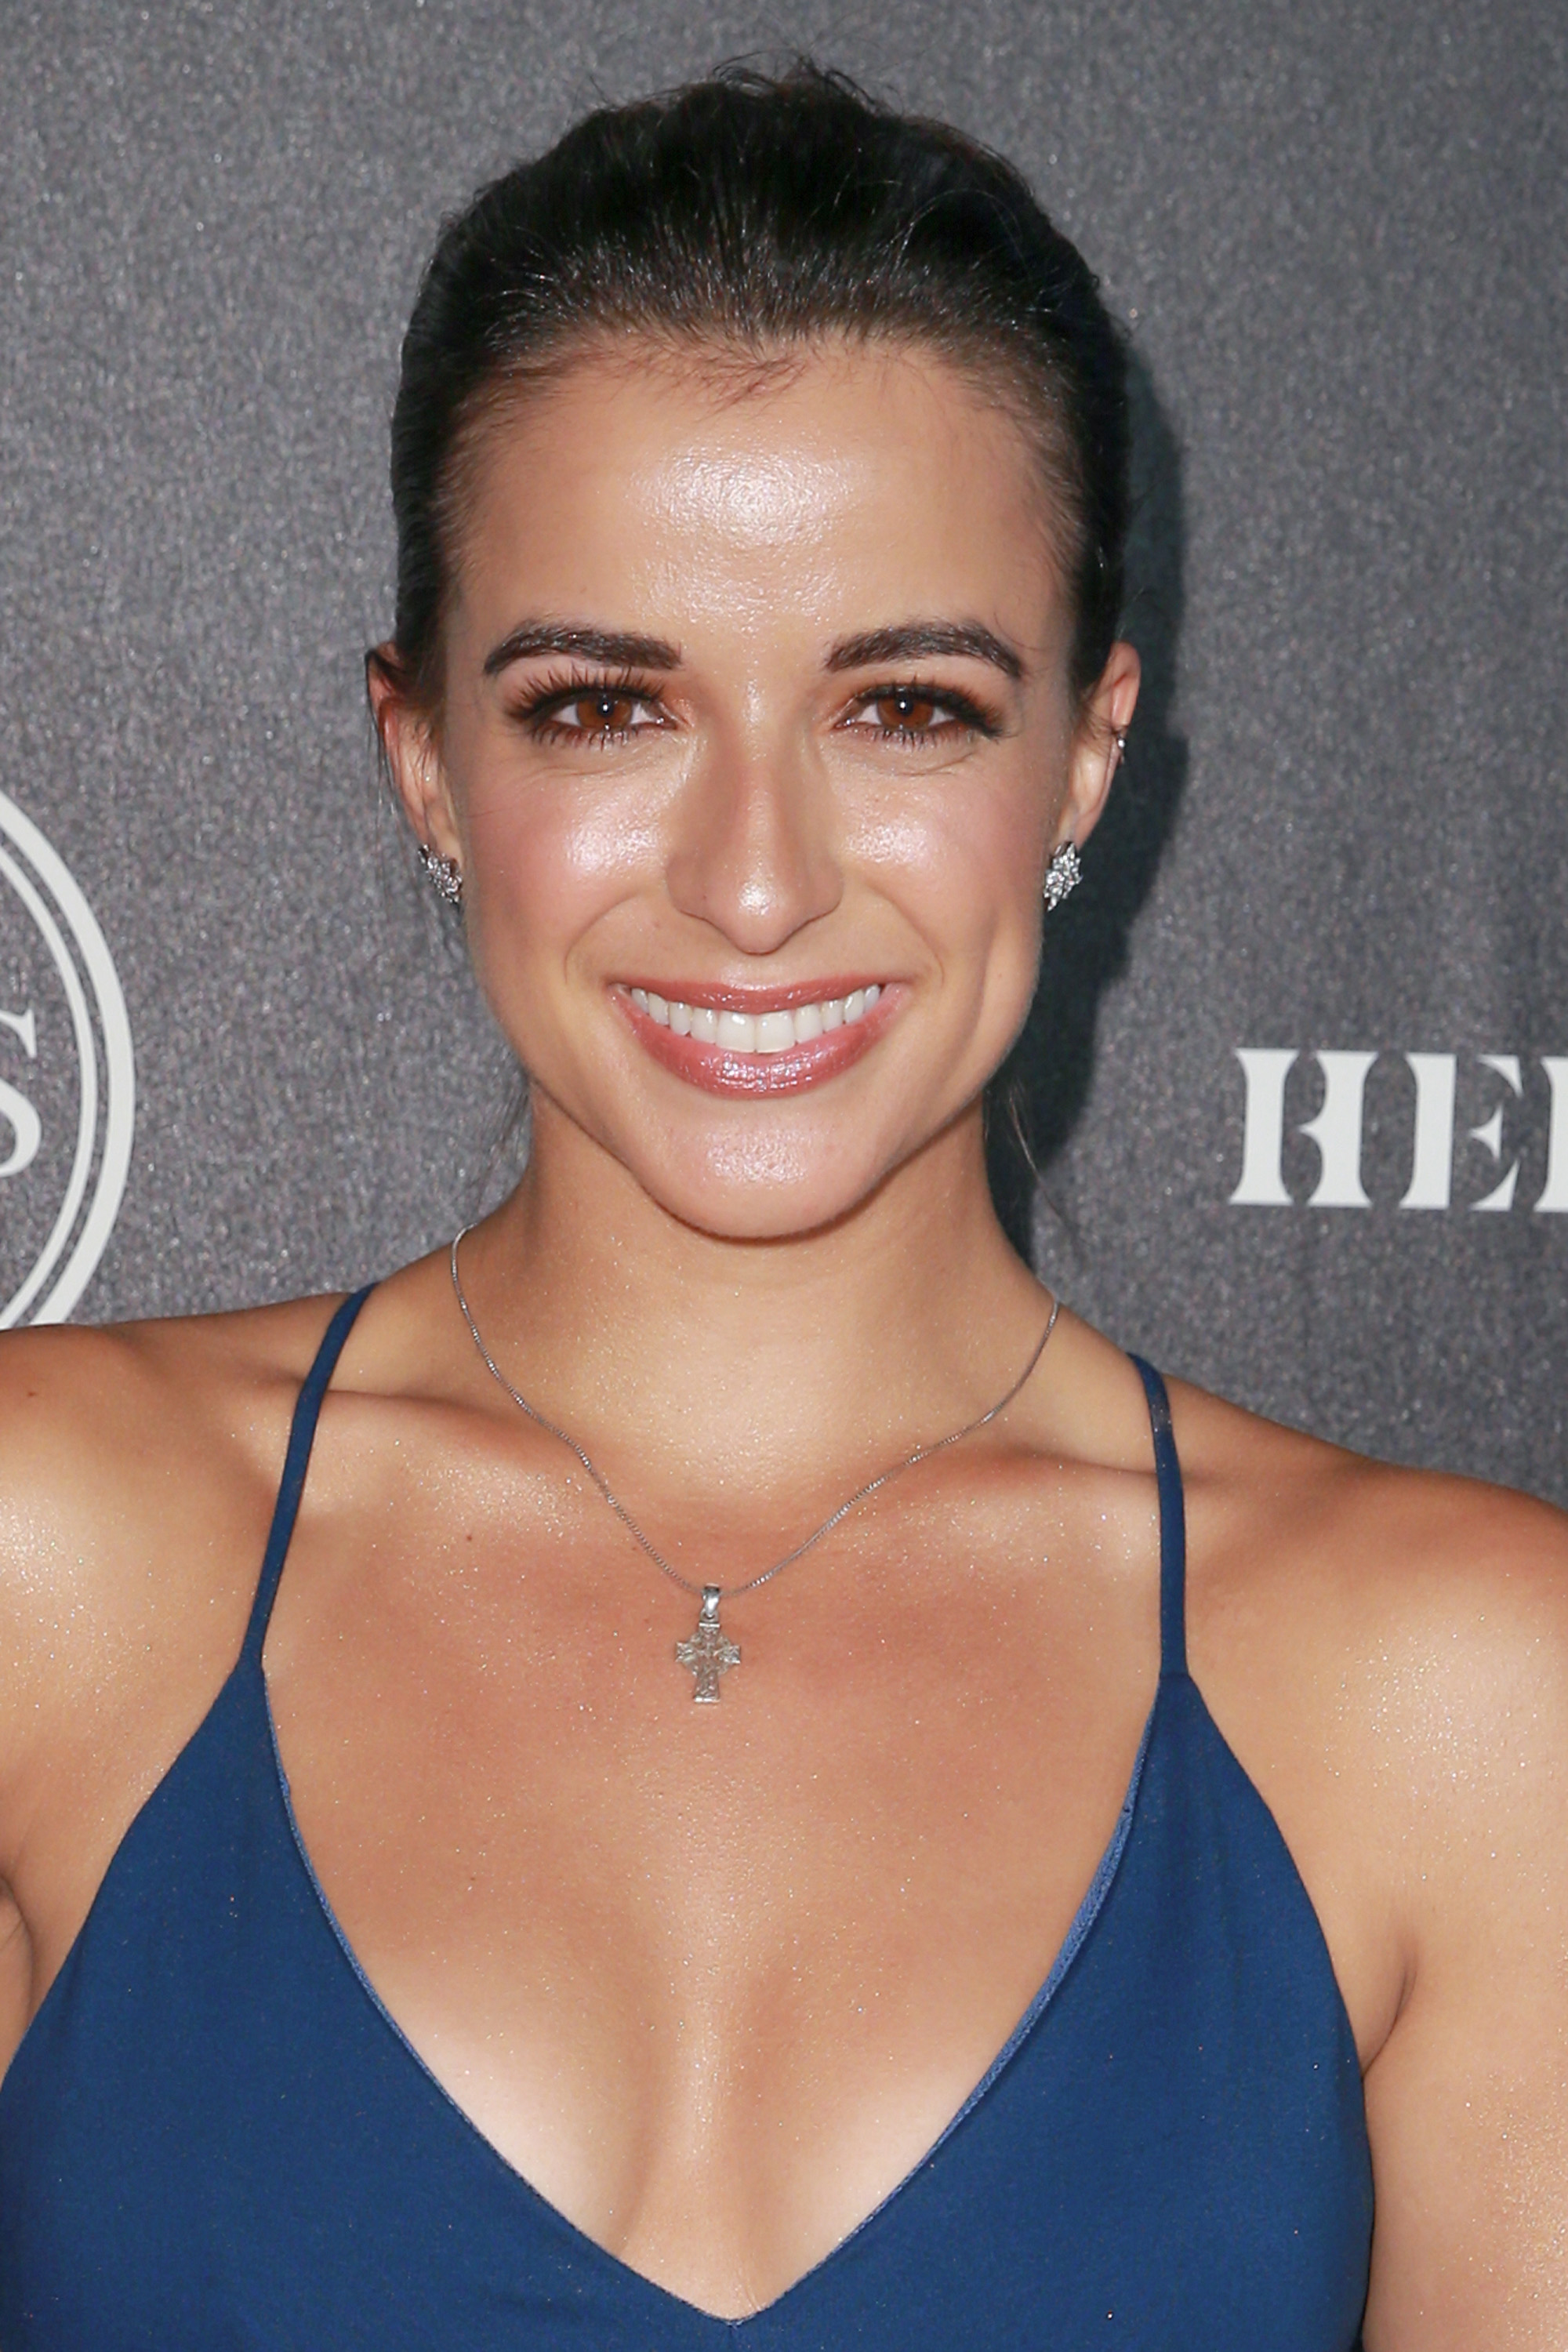 Victoria Arlen attends Heroes at the ESPYS at City Market Social House on July 17, 2018, in Los Angeles, California (Getty Images)